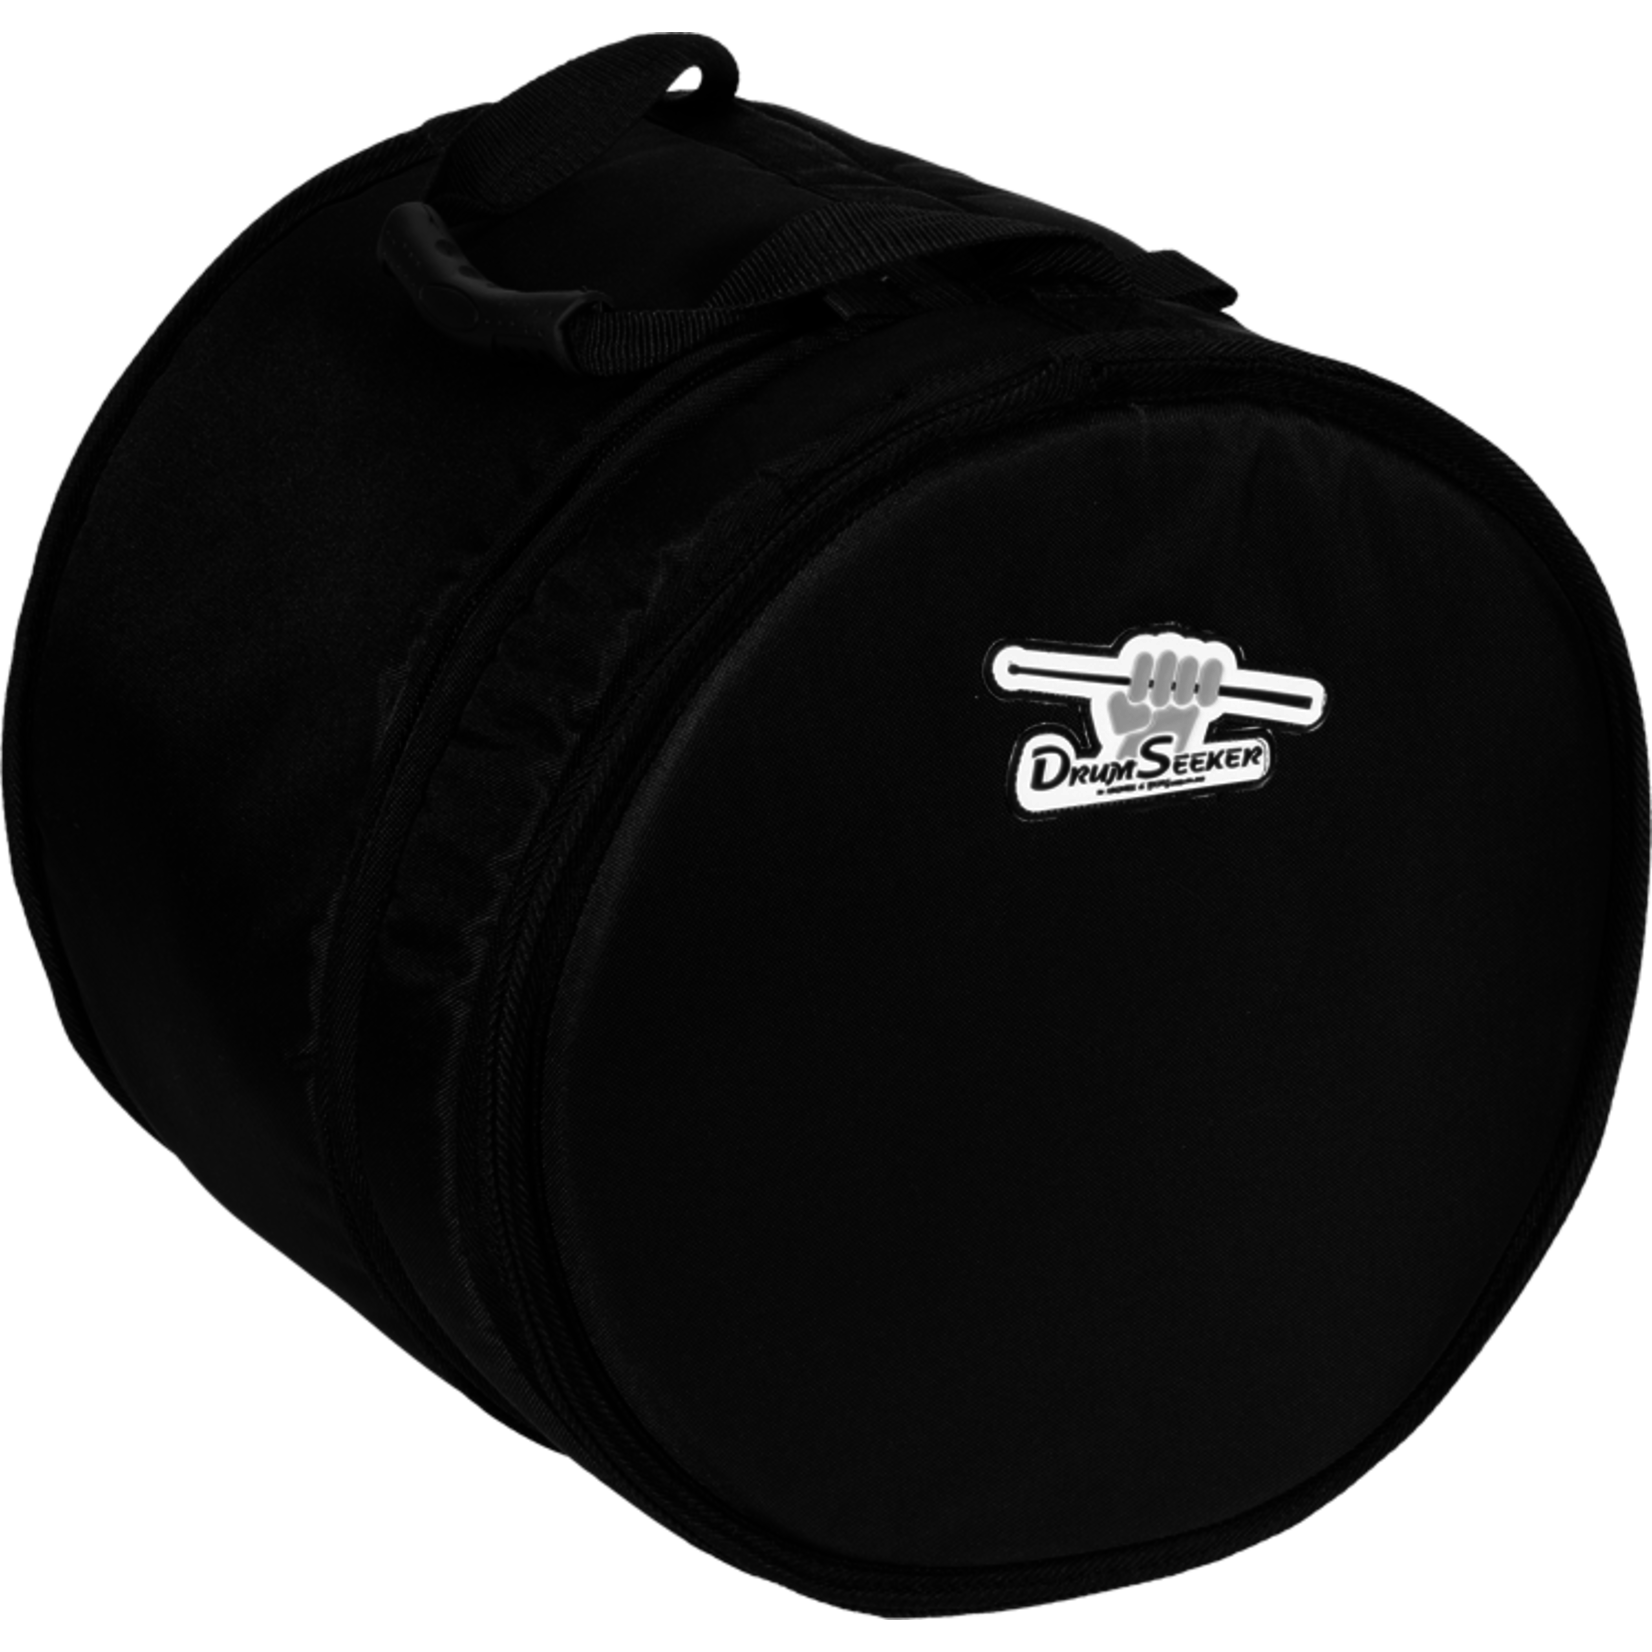 Humes and Berg Humes and Berg Drum Seeker 8x12 Bag